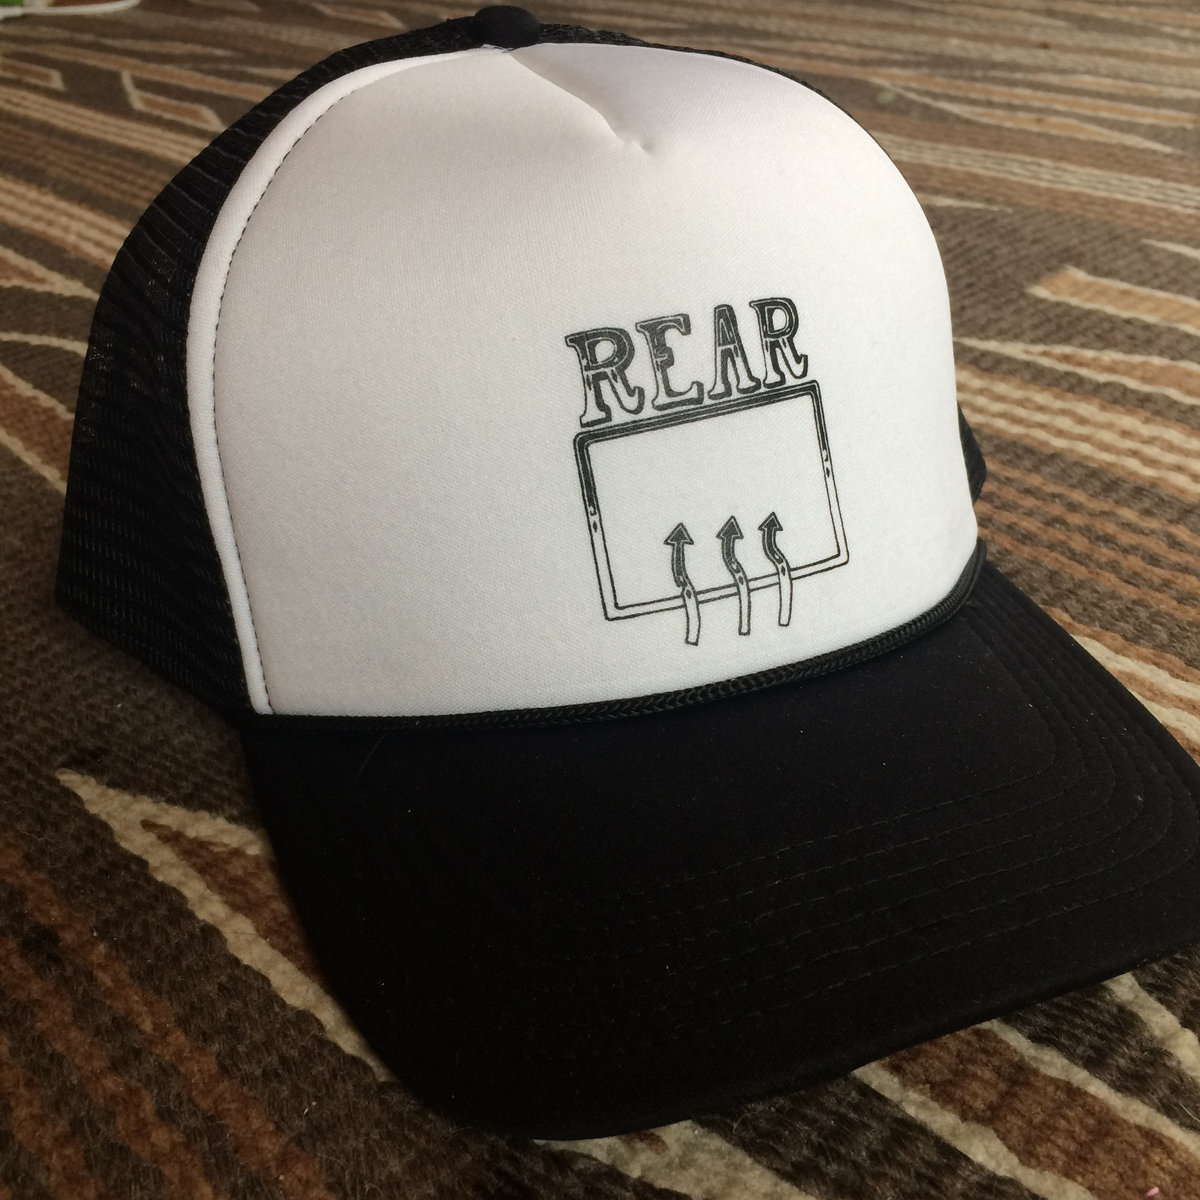 0b19cdf48774f Black and white trucker hat with classic rear defroster logo